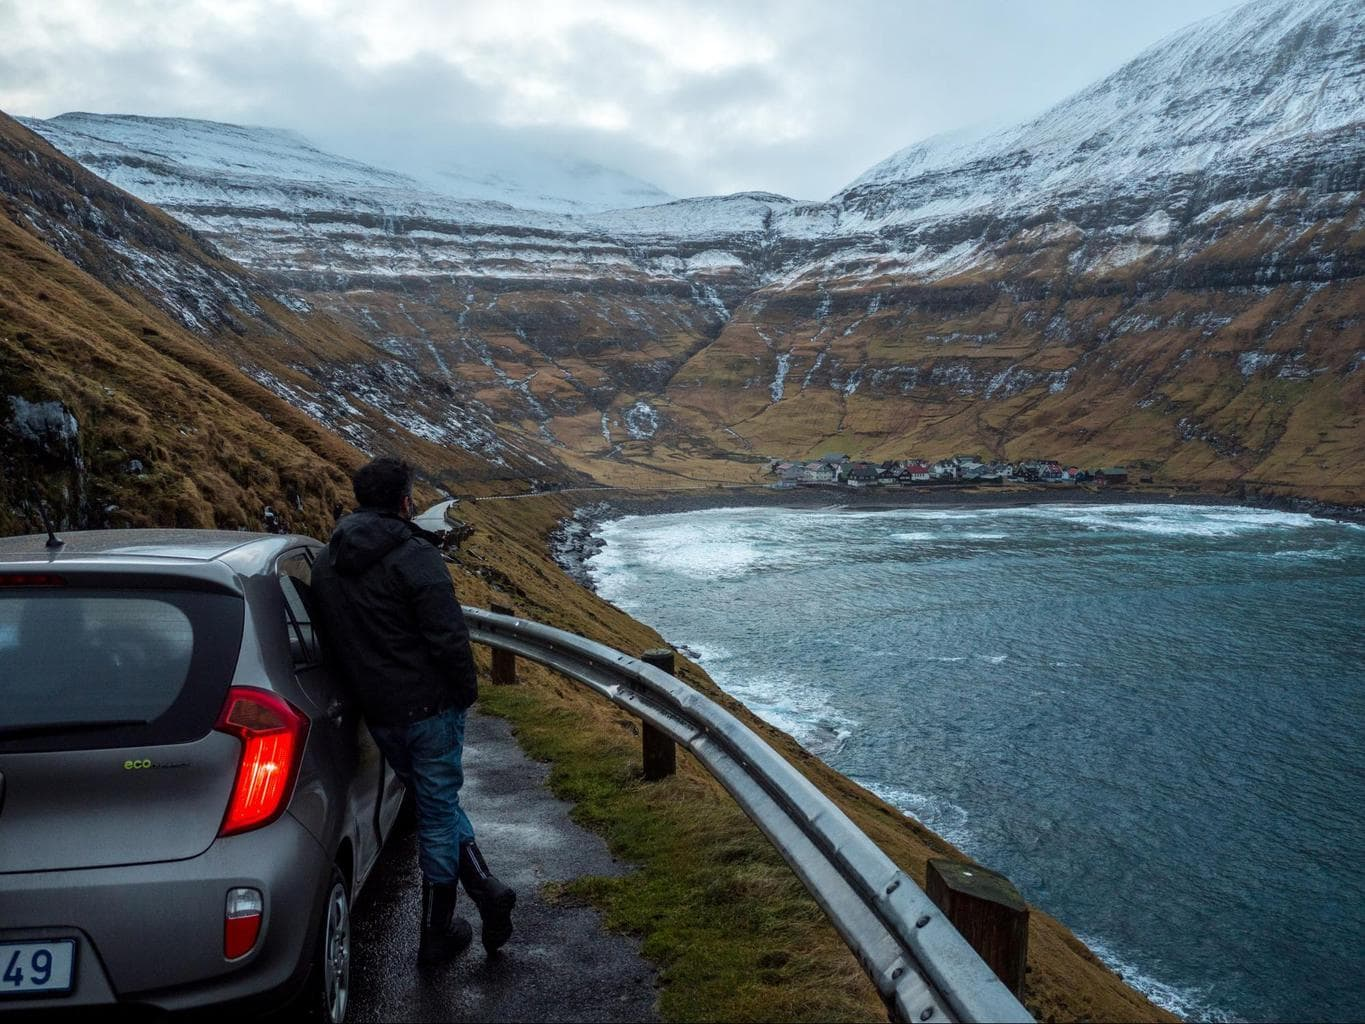 Road rules and car rentals in the Faroe Islands